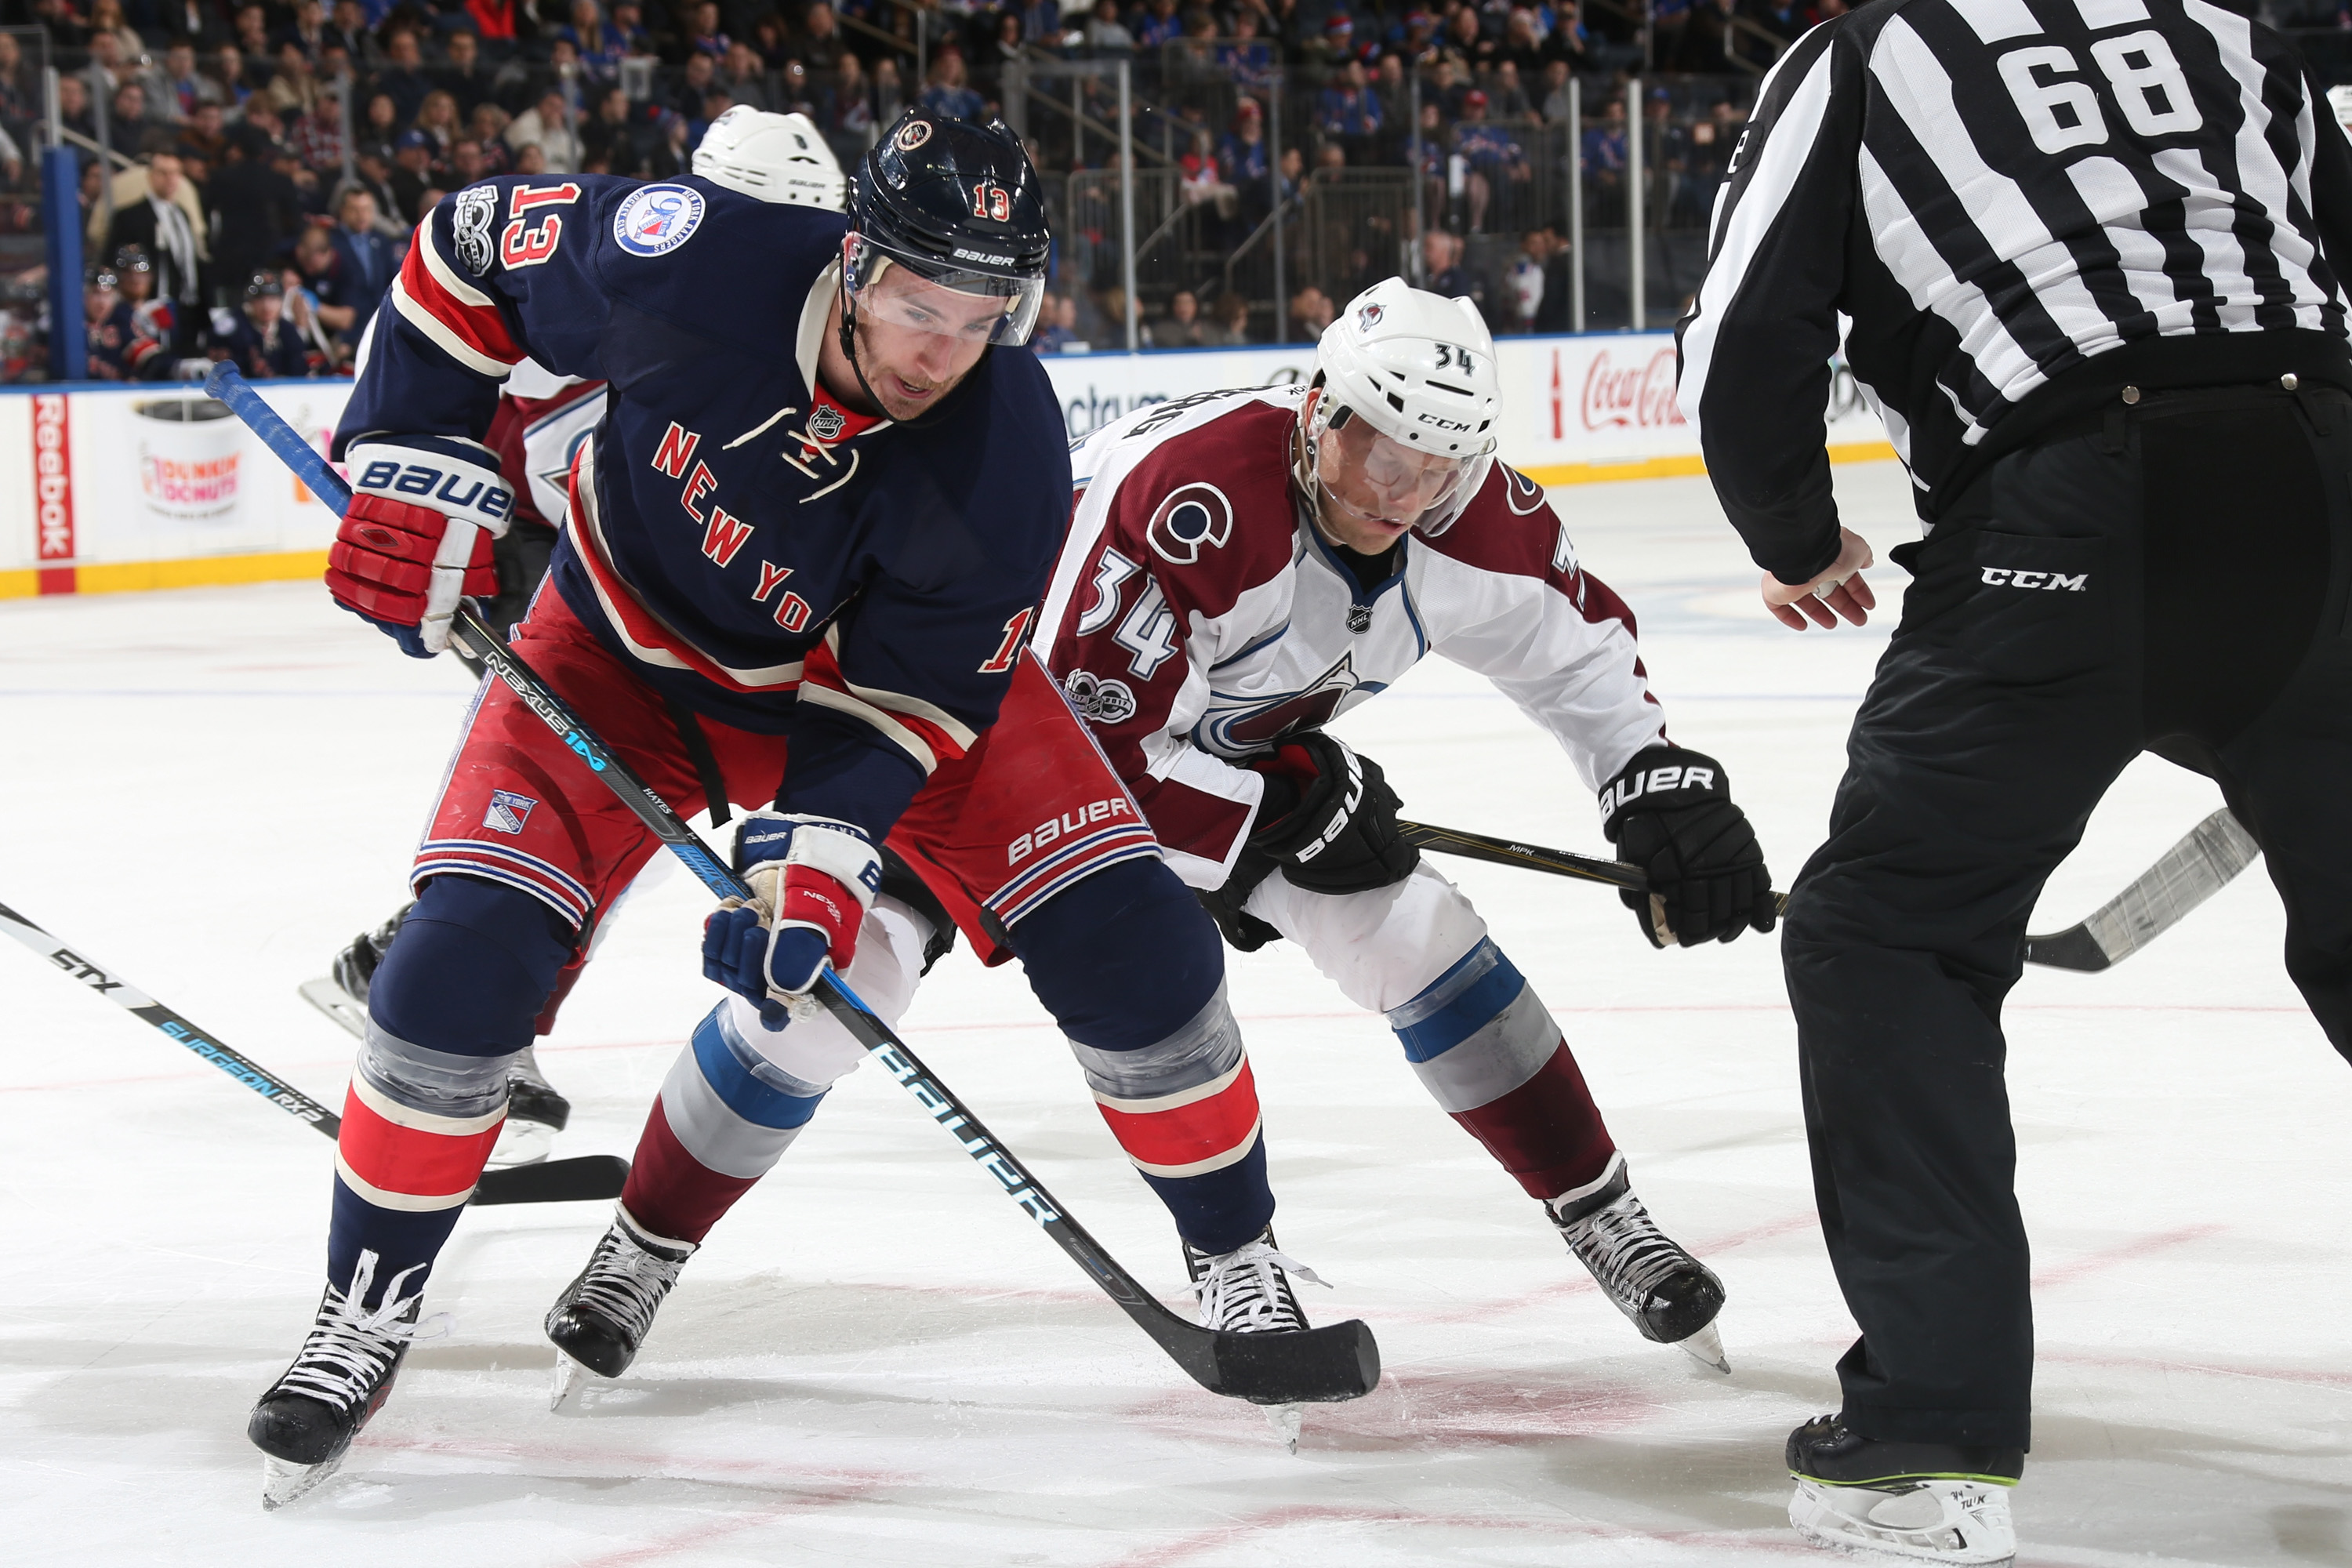 New York Rangers Analysis: Varlamov steals a win for Colorado